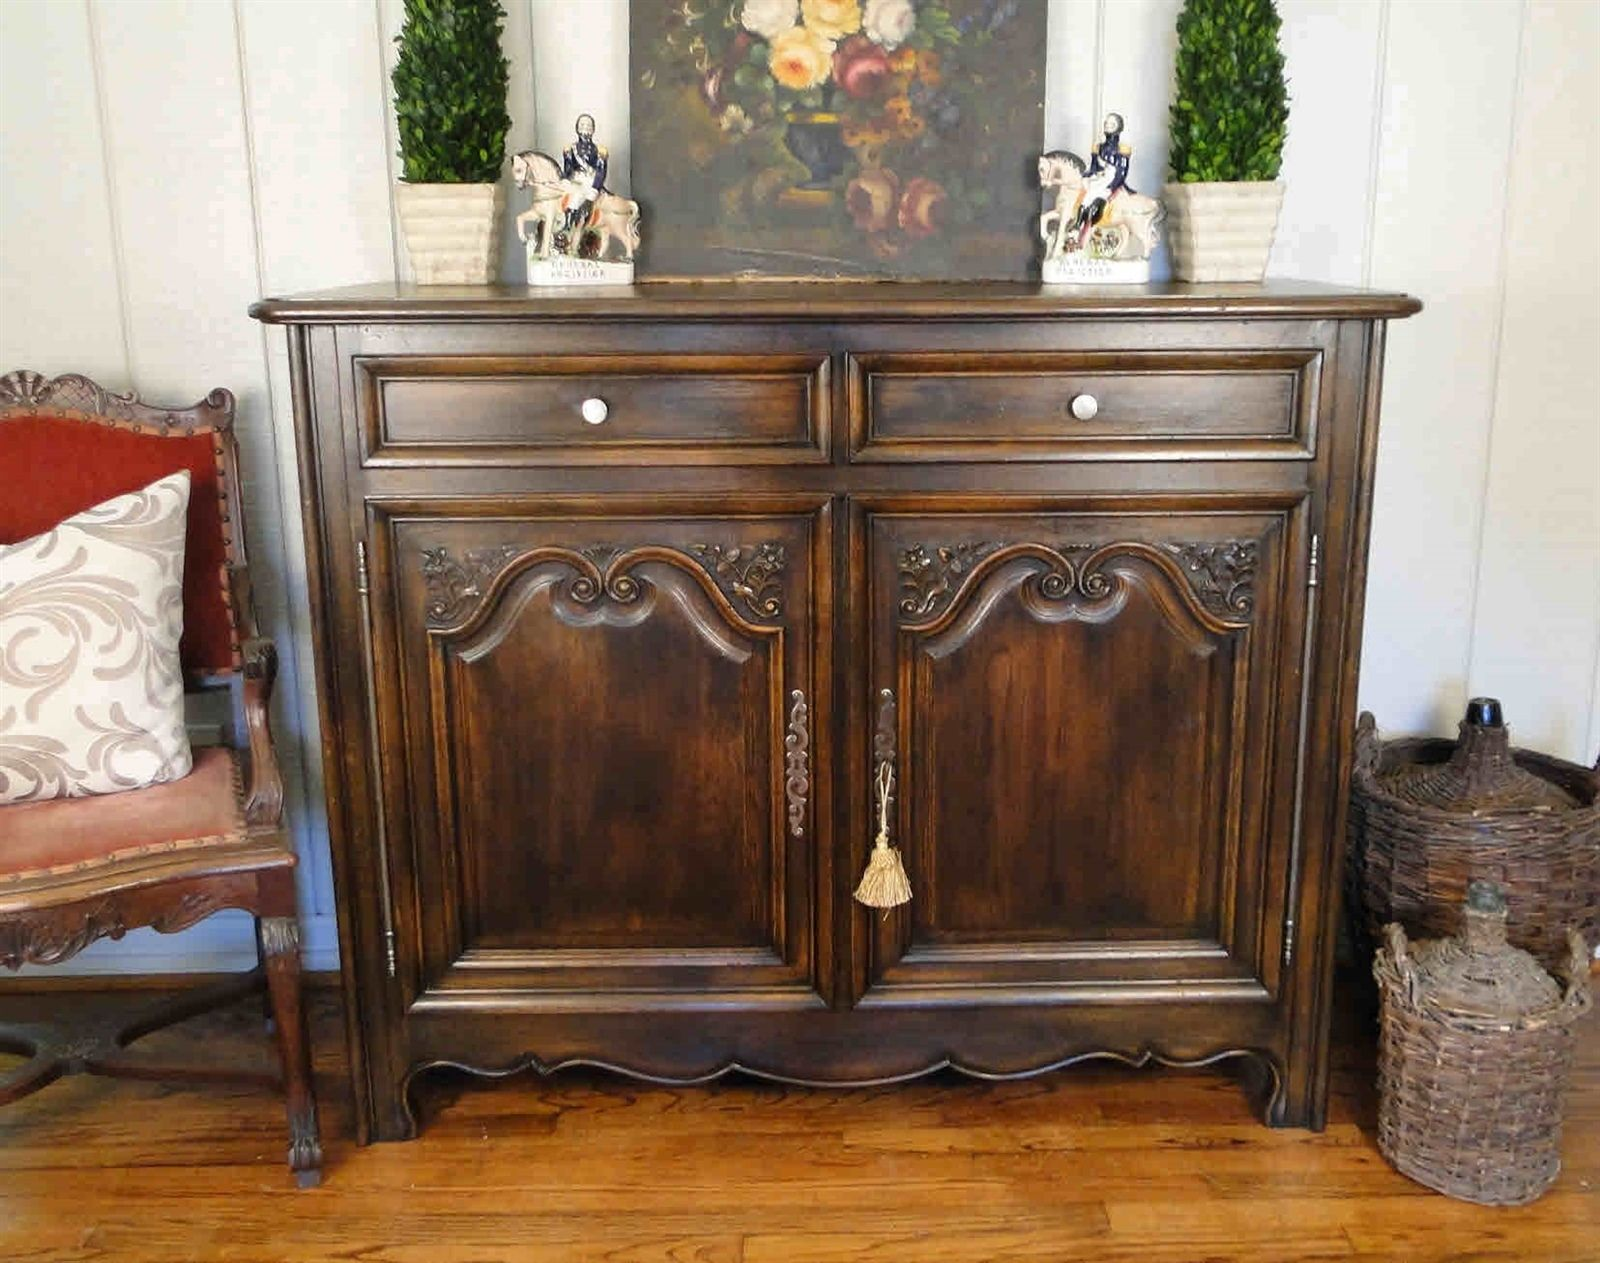 Antique French Country Buffet and Sideboard Server, Beautifully Carved of Dark Old Oak